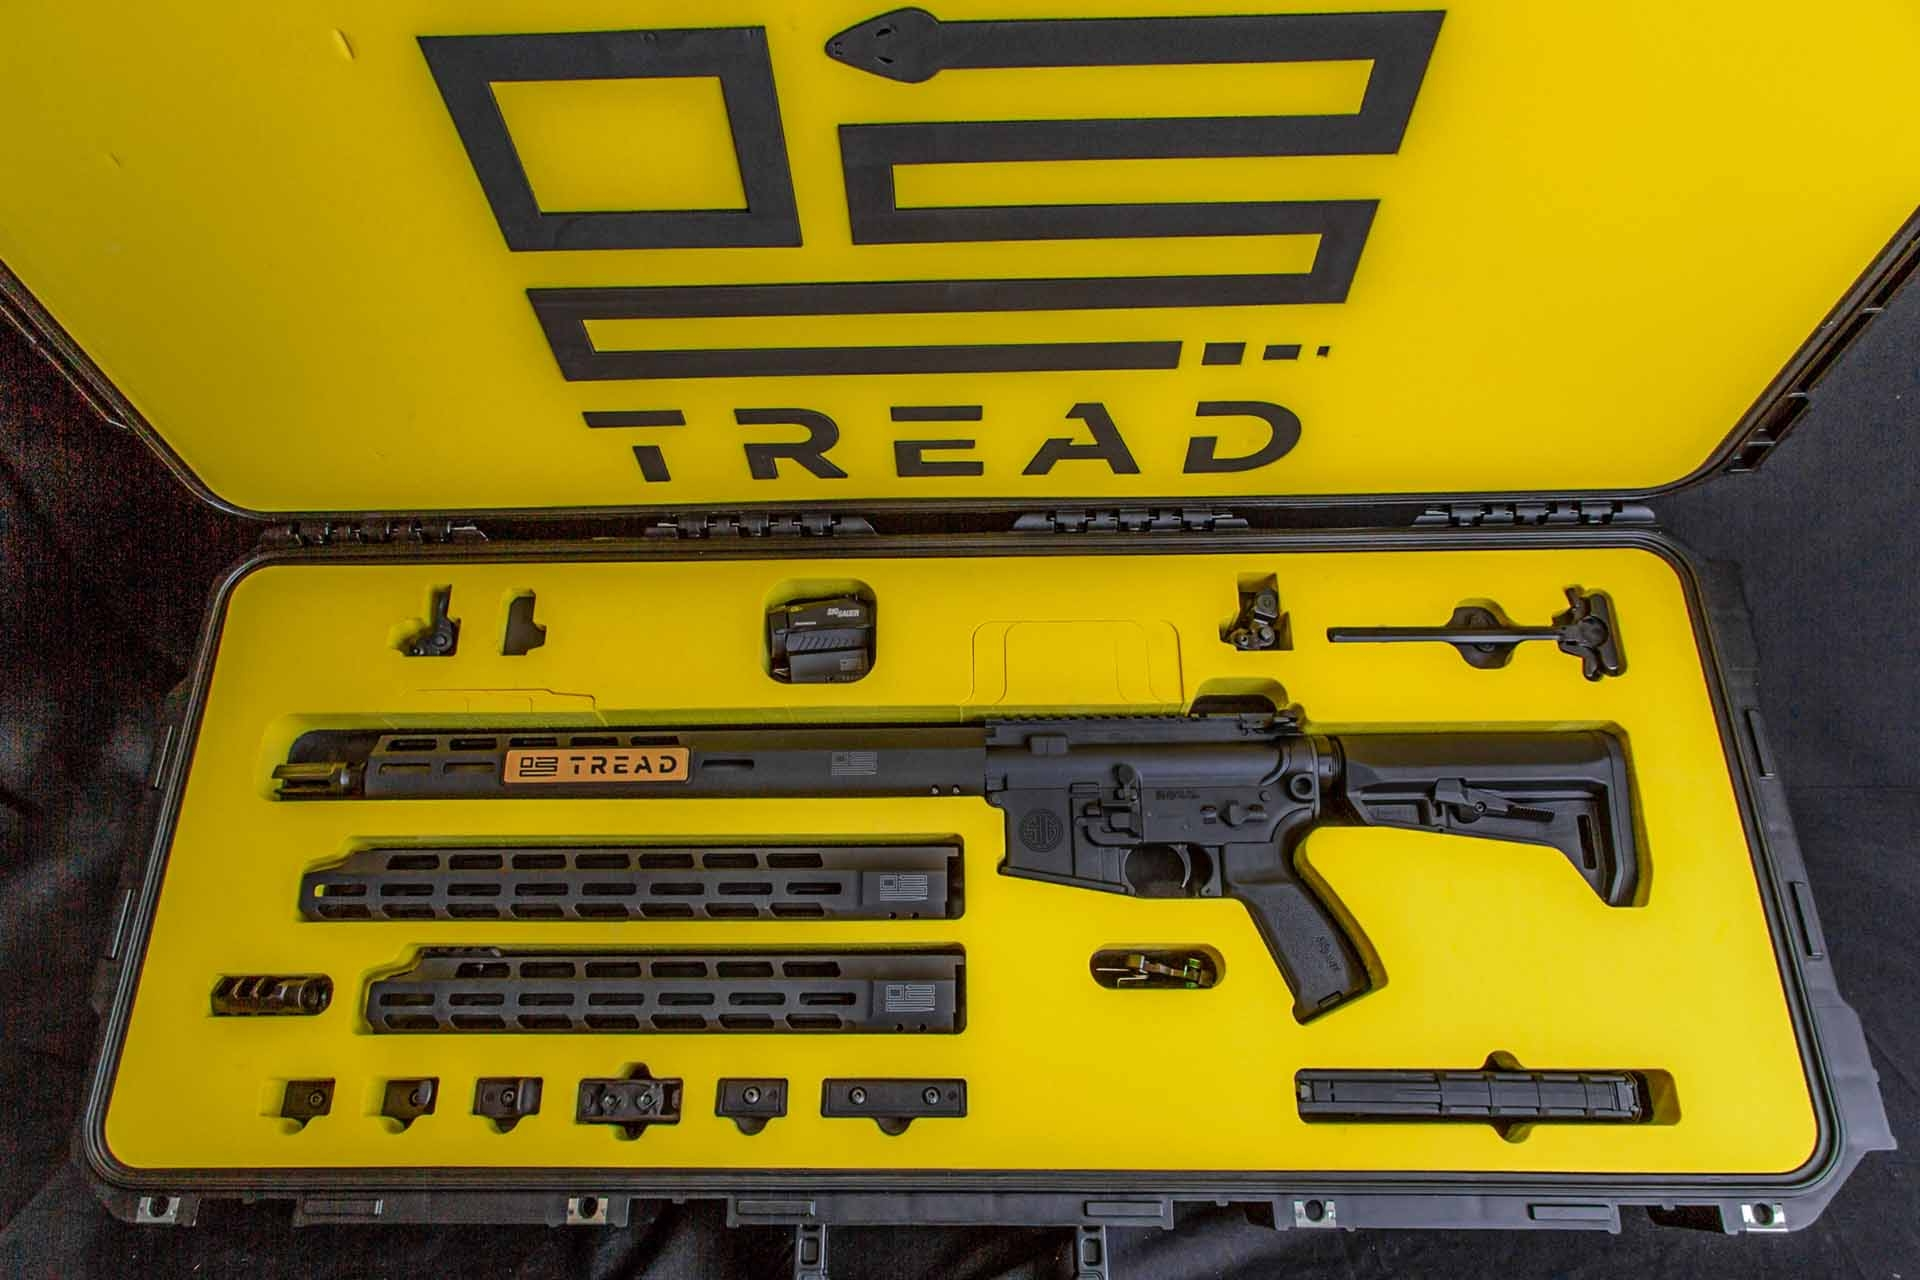 SIG Sauer TREAD rifle and accessories in its case